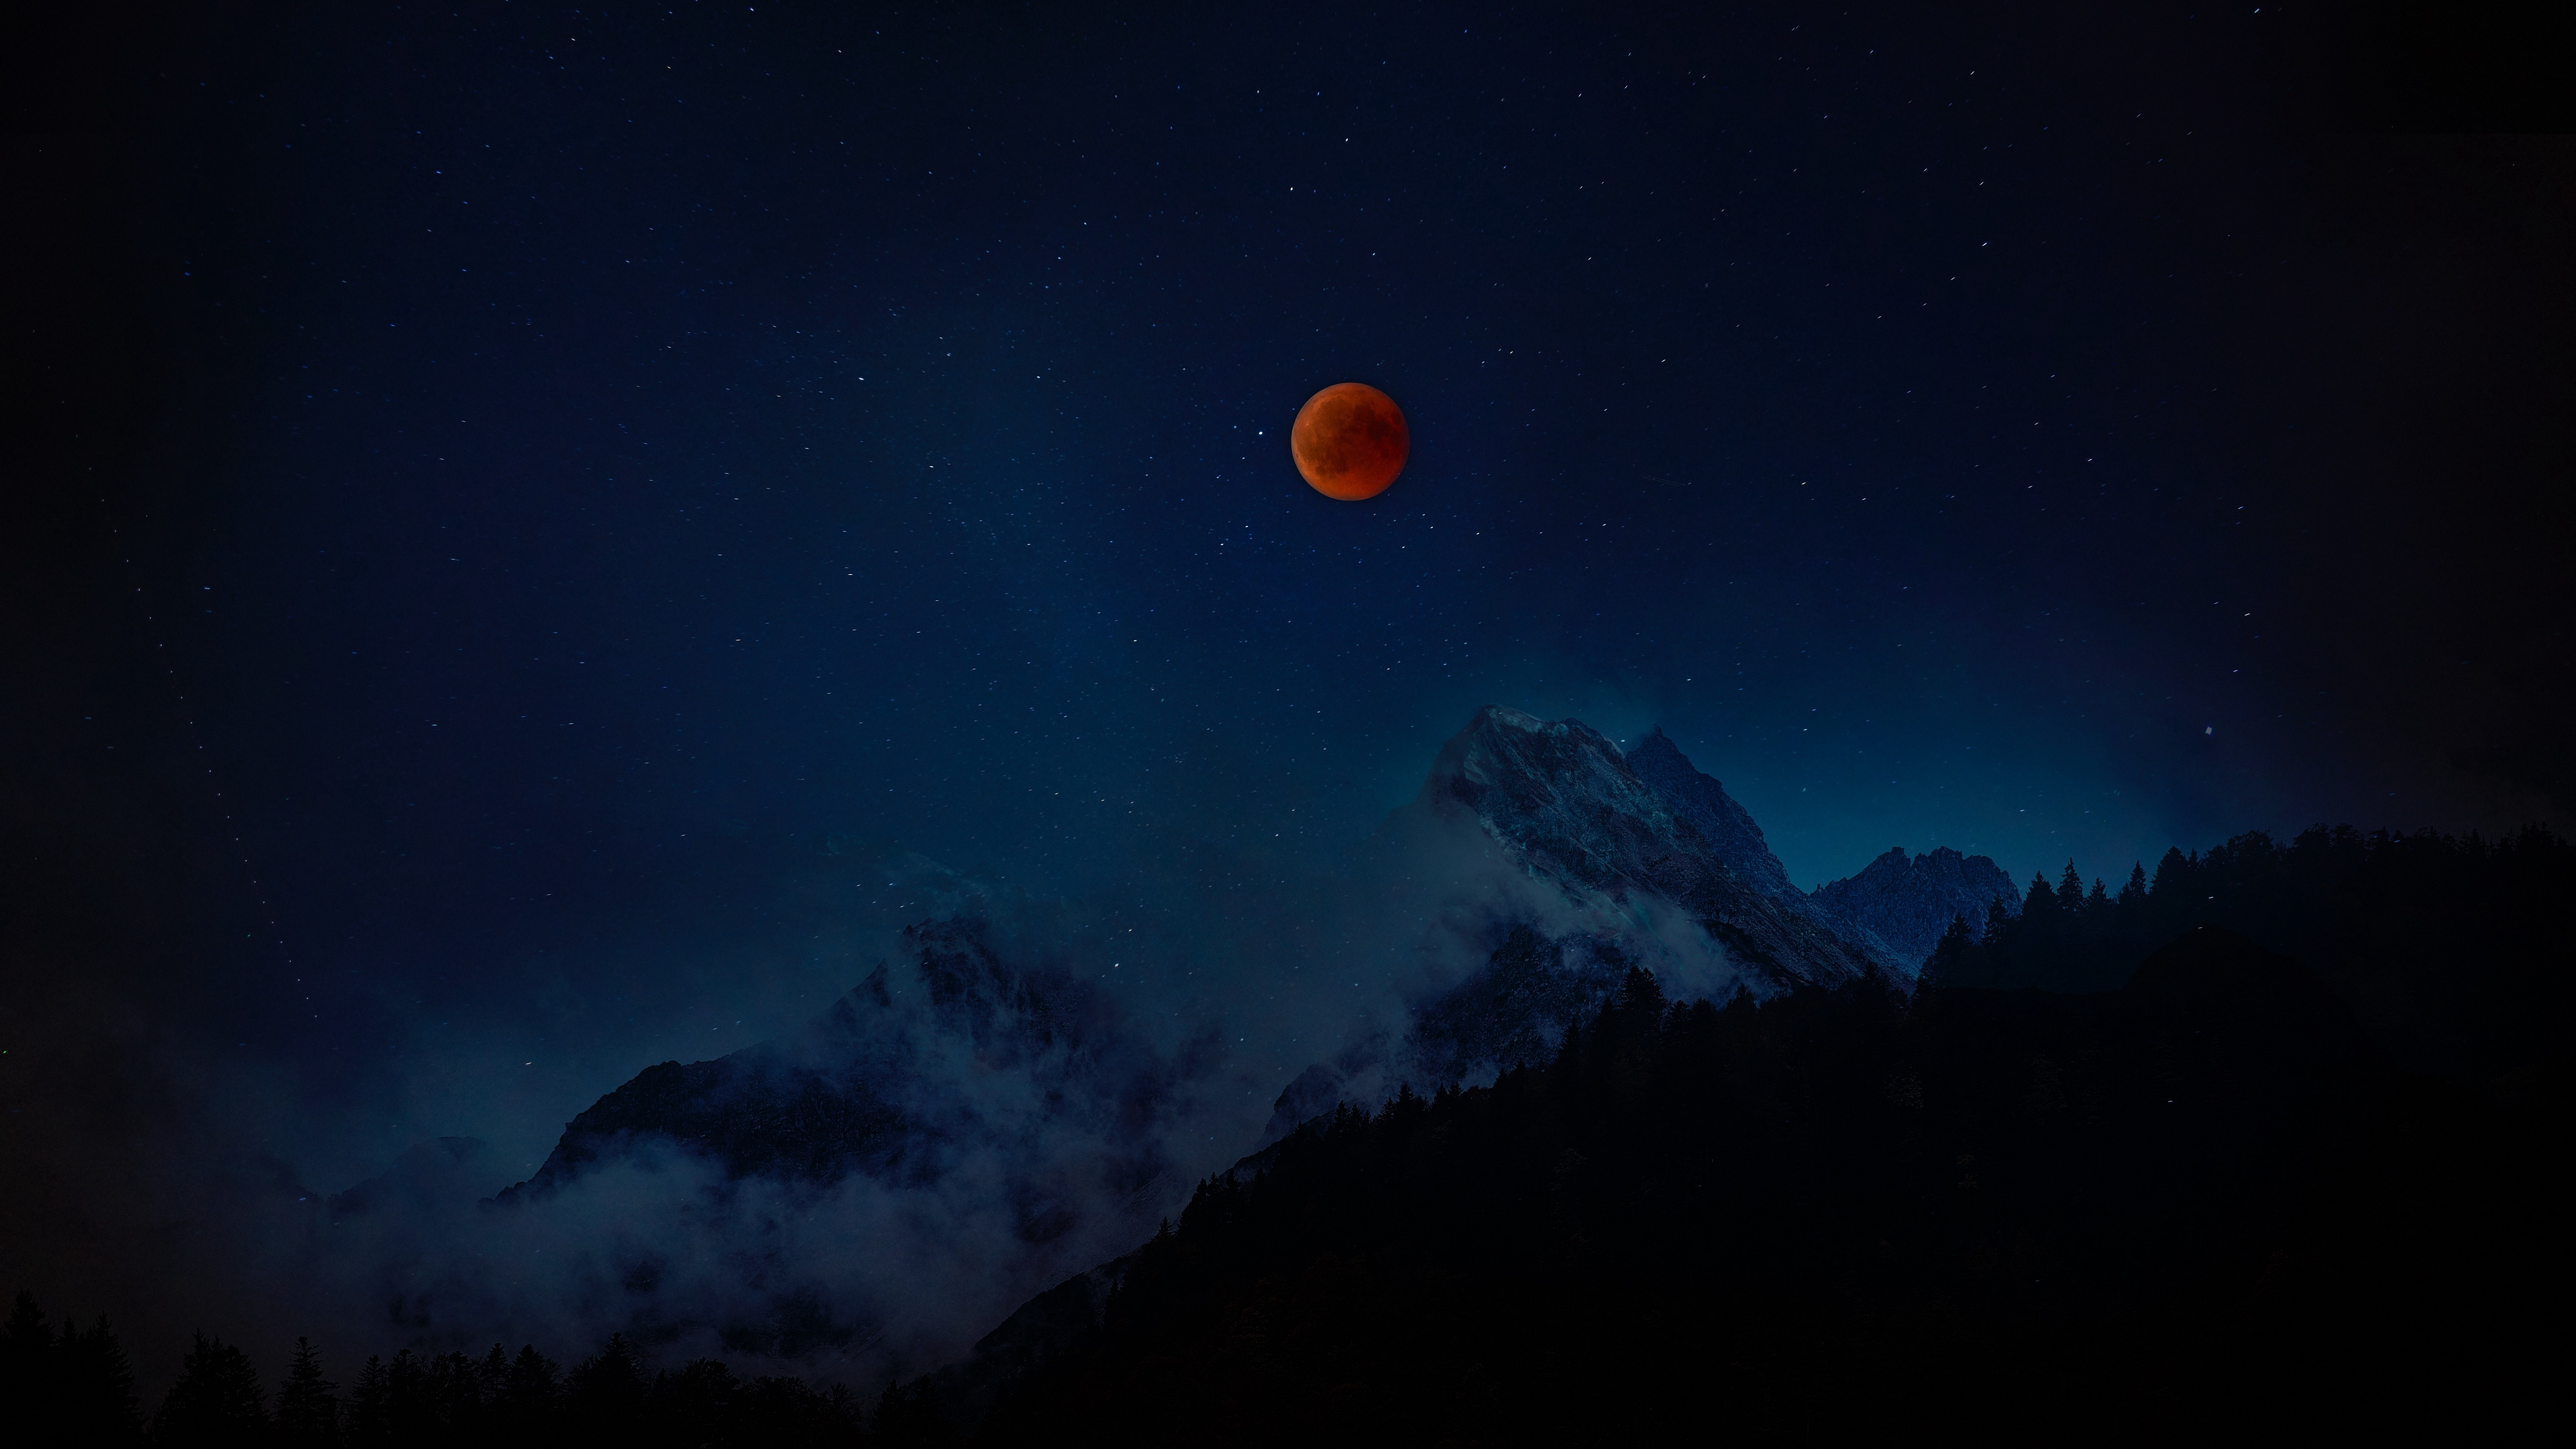 full moon red moon starry sky mountains night 4k 1540576100 - full moon, red moon, starry sky, mountains, night 4k - starry sky, red moon, full moon